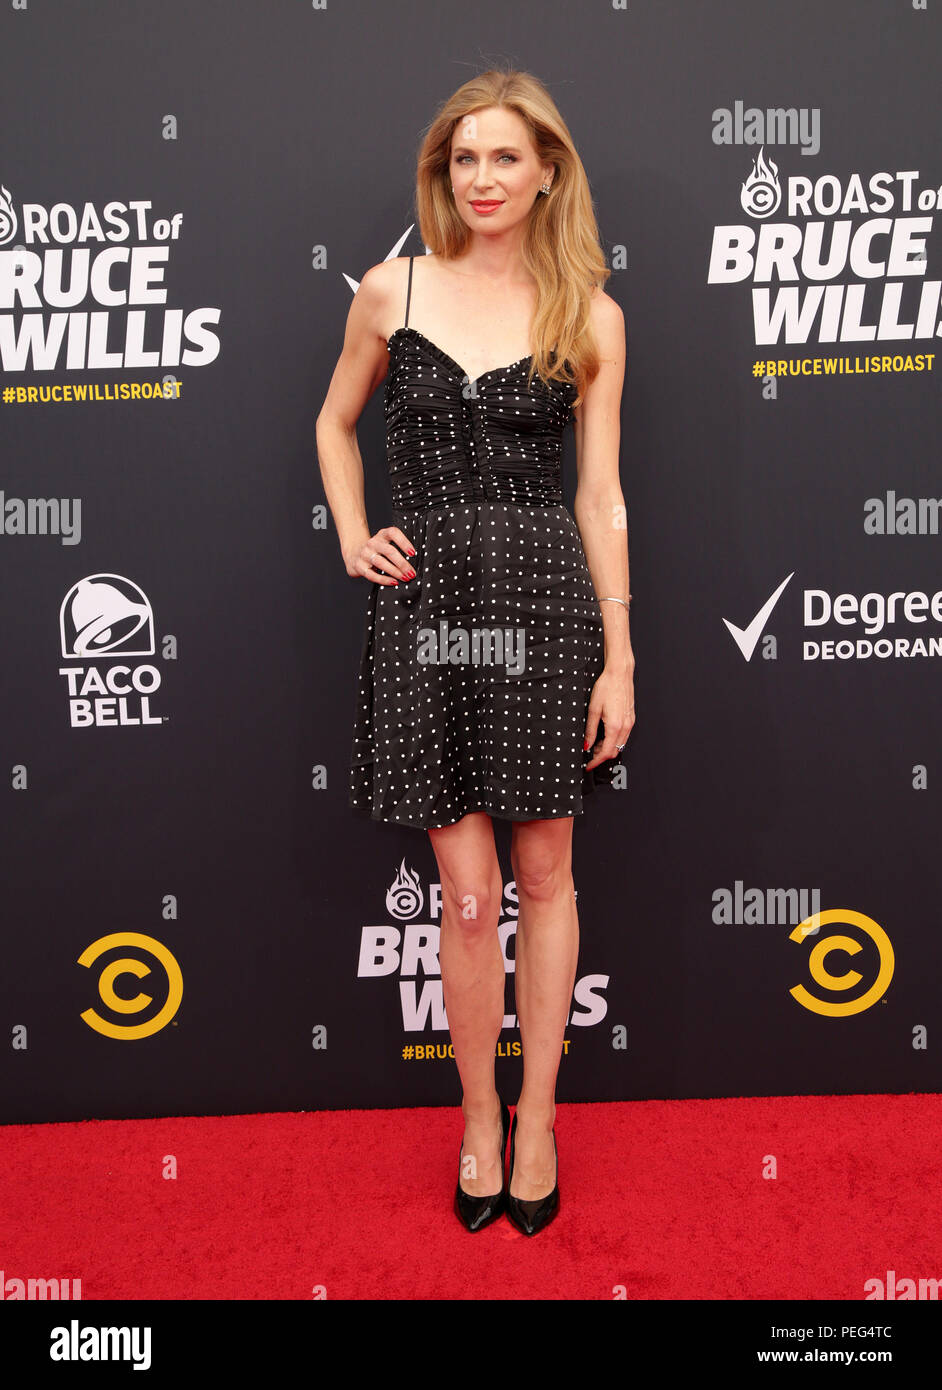 Celebrities Attend Comedy Central Roast Of Bruce Willis At The Hollywood Palladium Featuring Anne